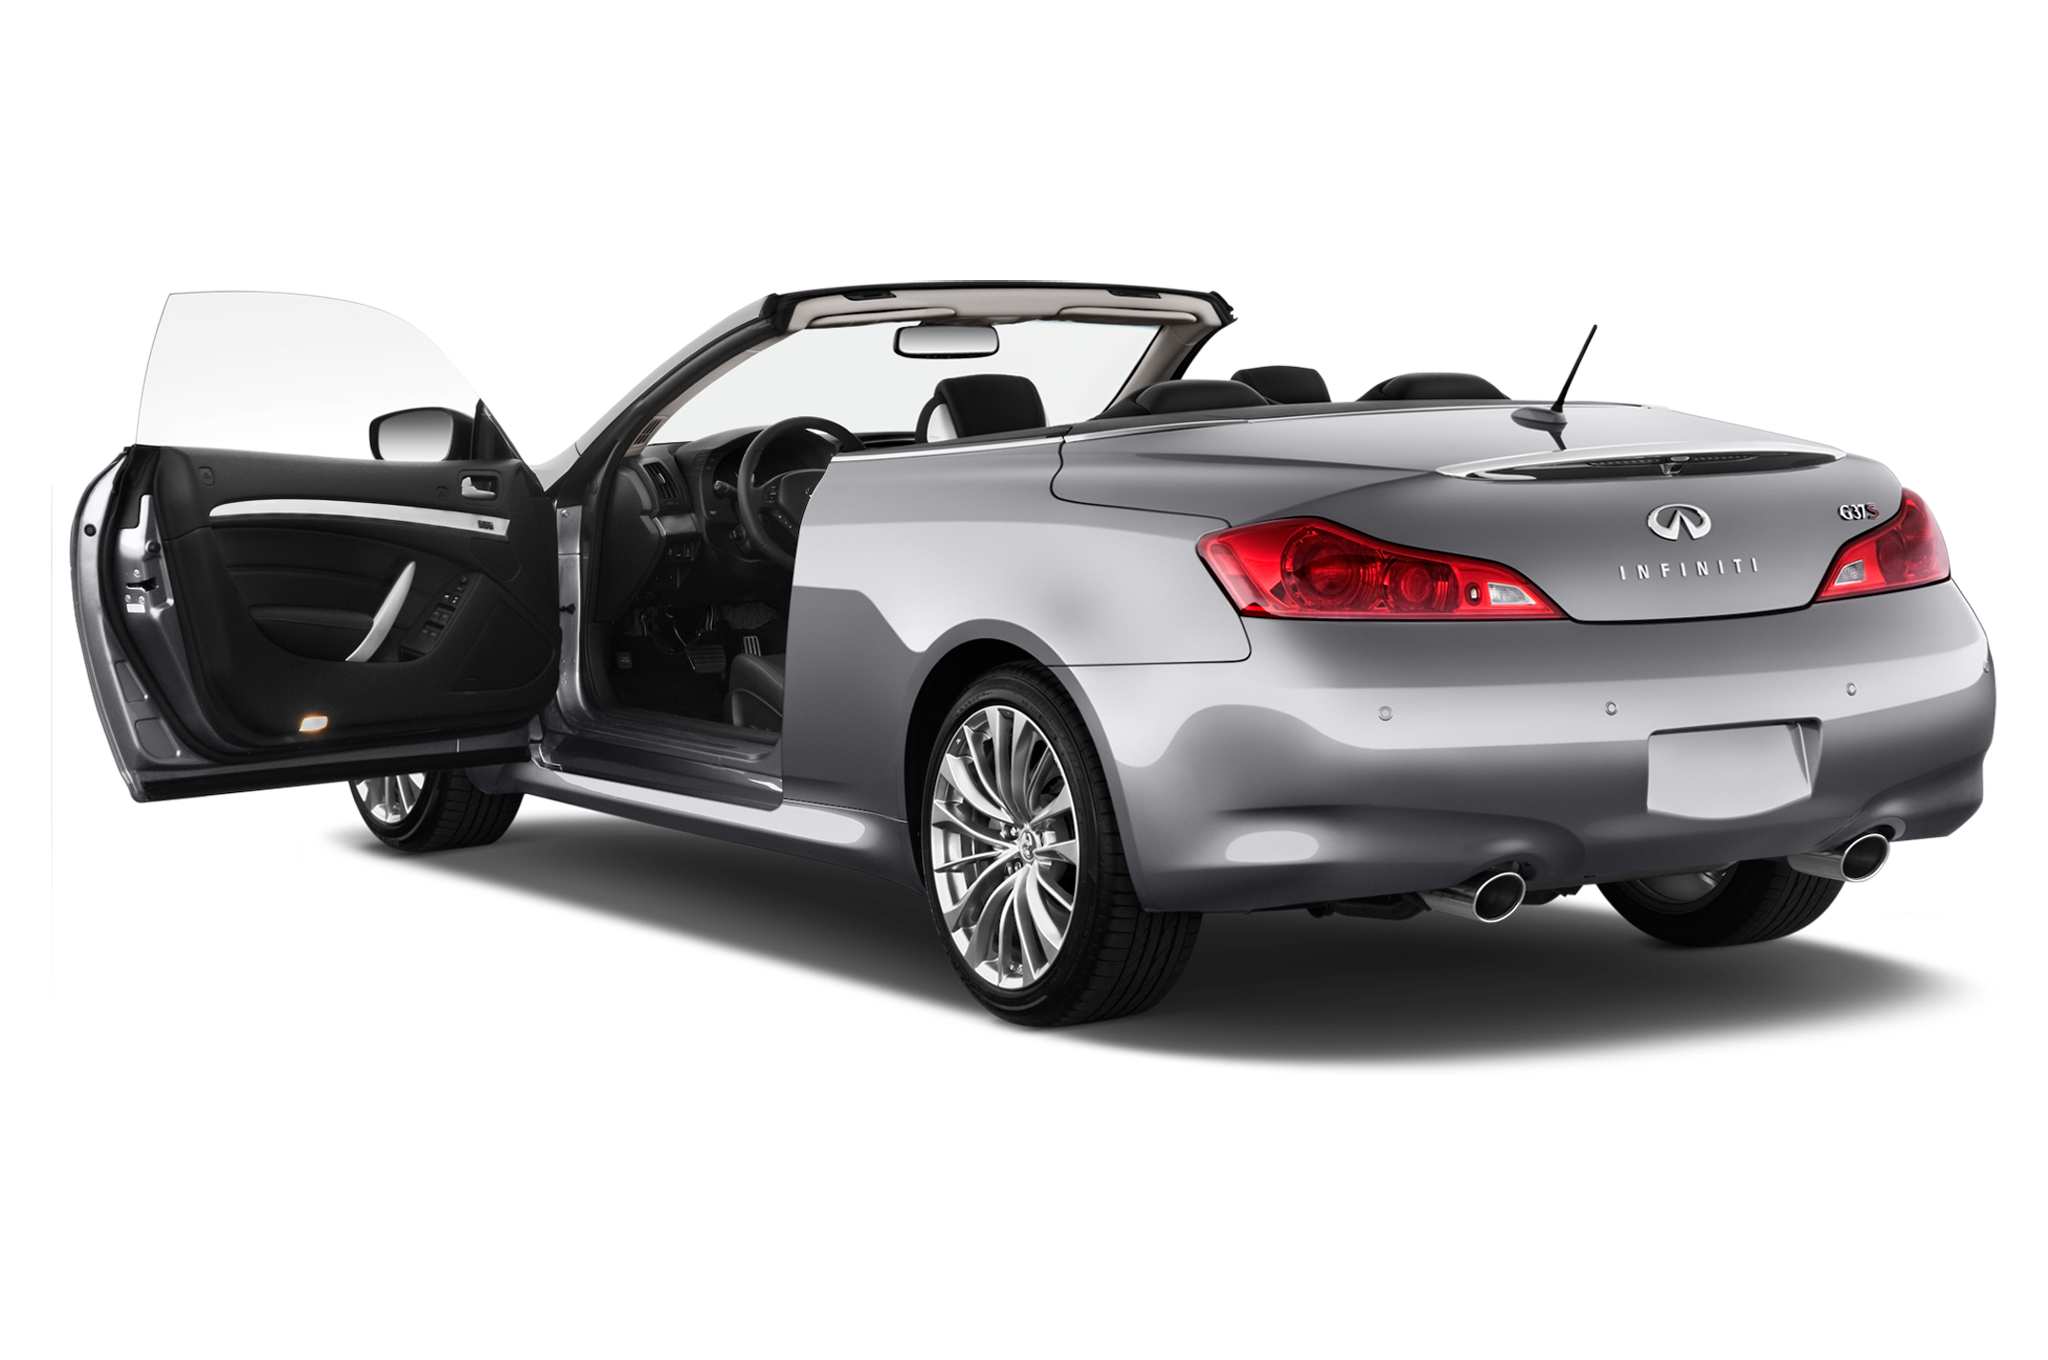 2010 infiniti g37 convertible infiniti luxury convertible review automobile magazine. Black Bedroom Furniture Sets. Home Design Ideas